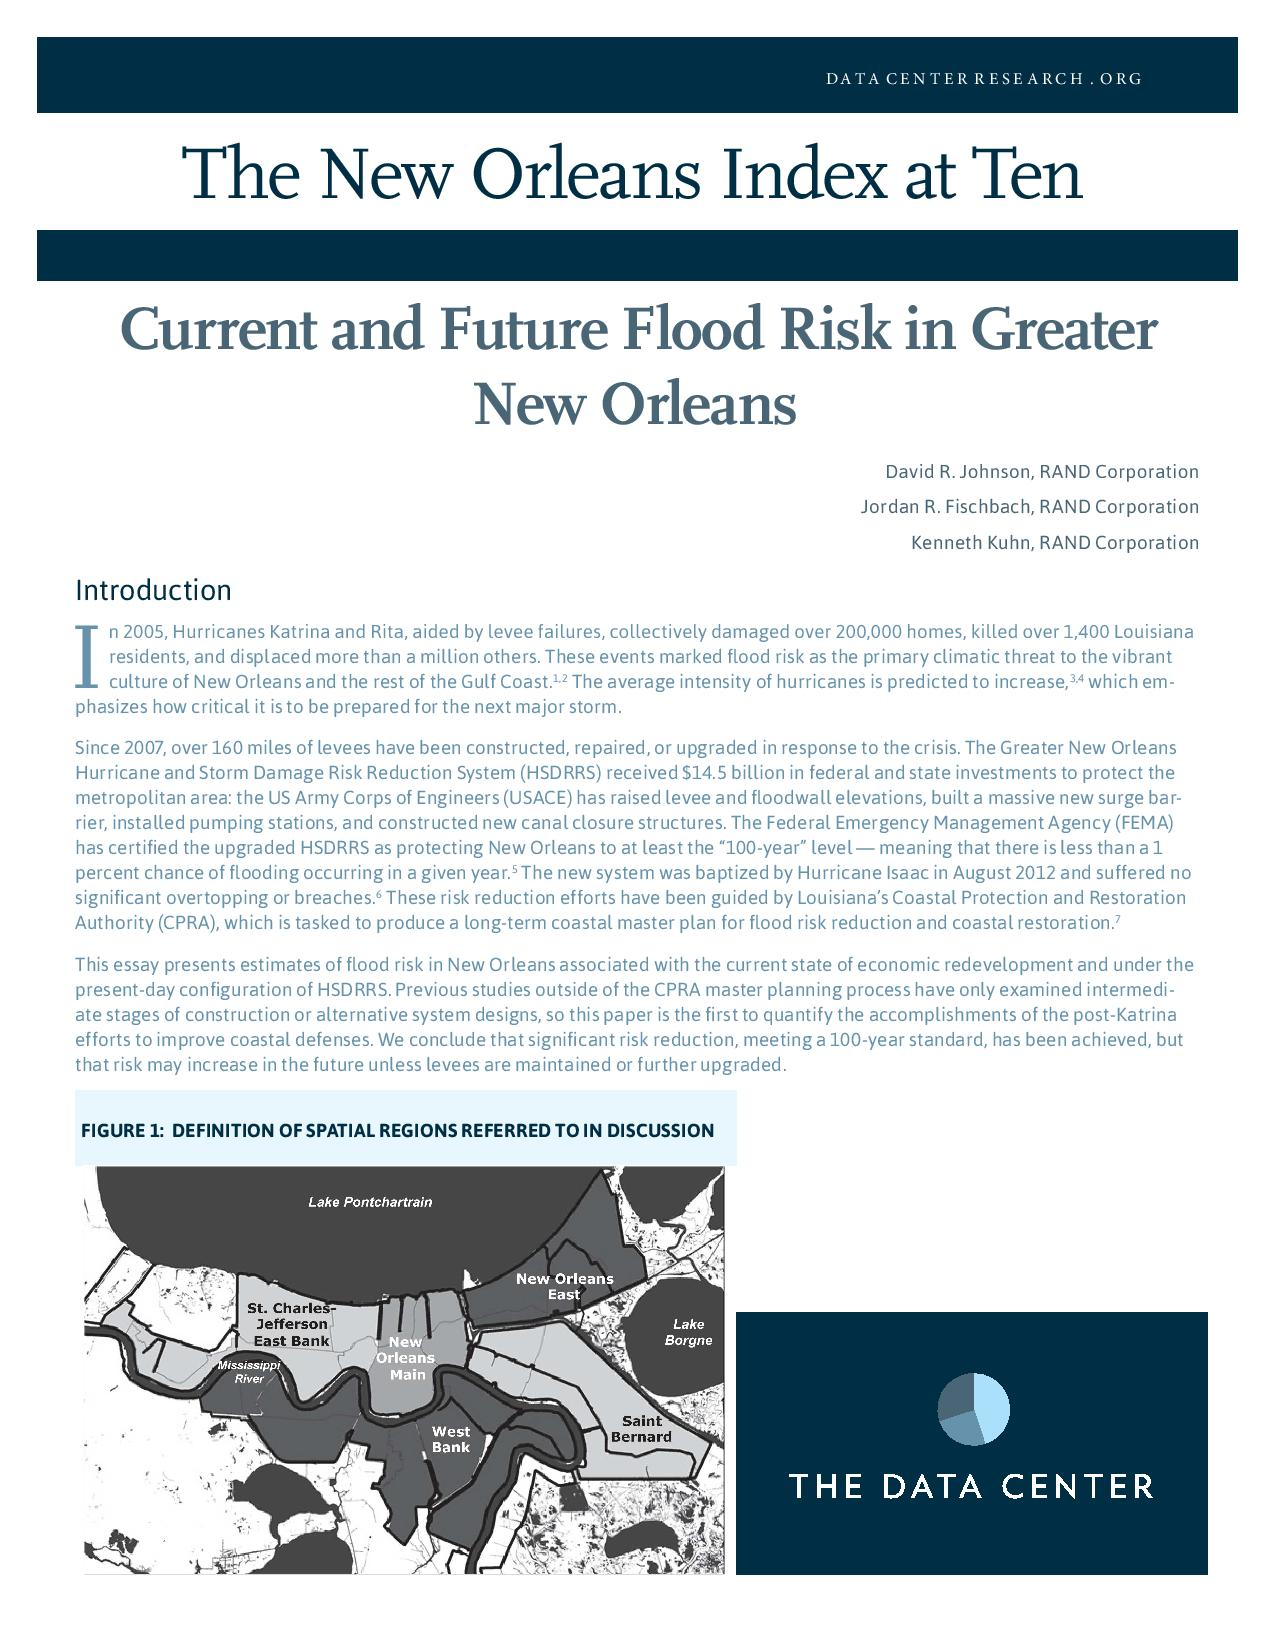 Current and Future Flood Risk in Greater New Orleans